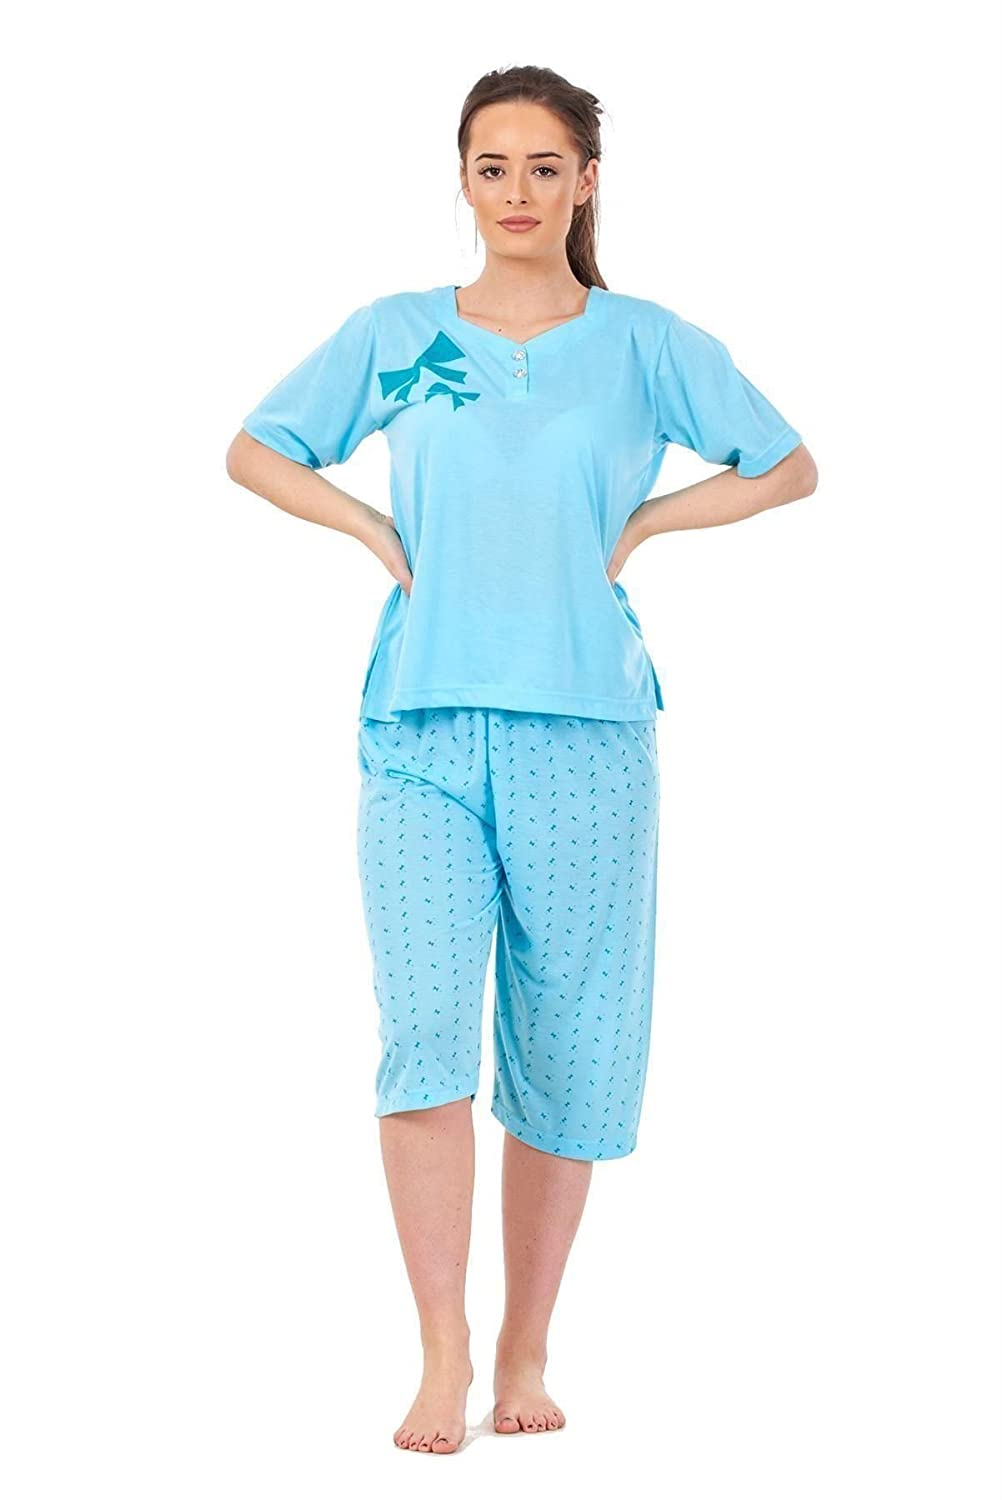 Ladies Pyjama Set 3/4 Length Bow Print Short Sleeve V Neck Cotton Soft Nightwear Does not Apply